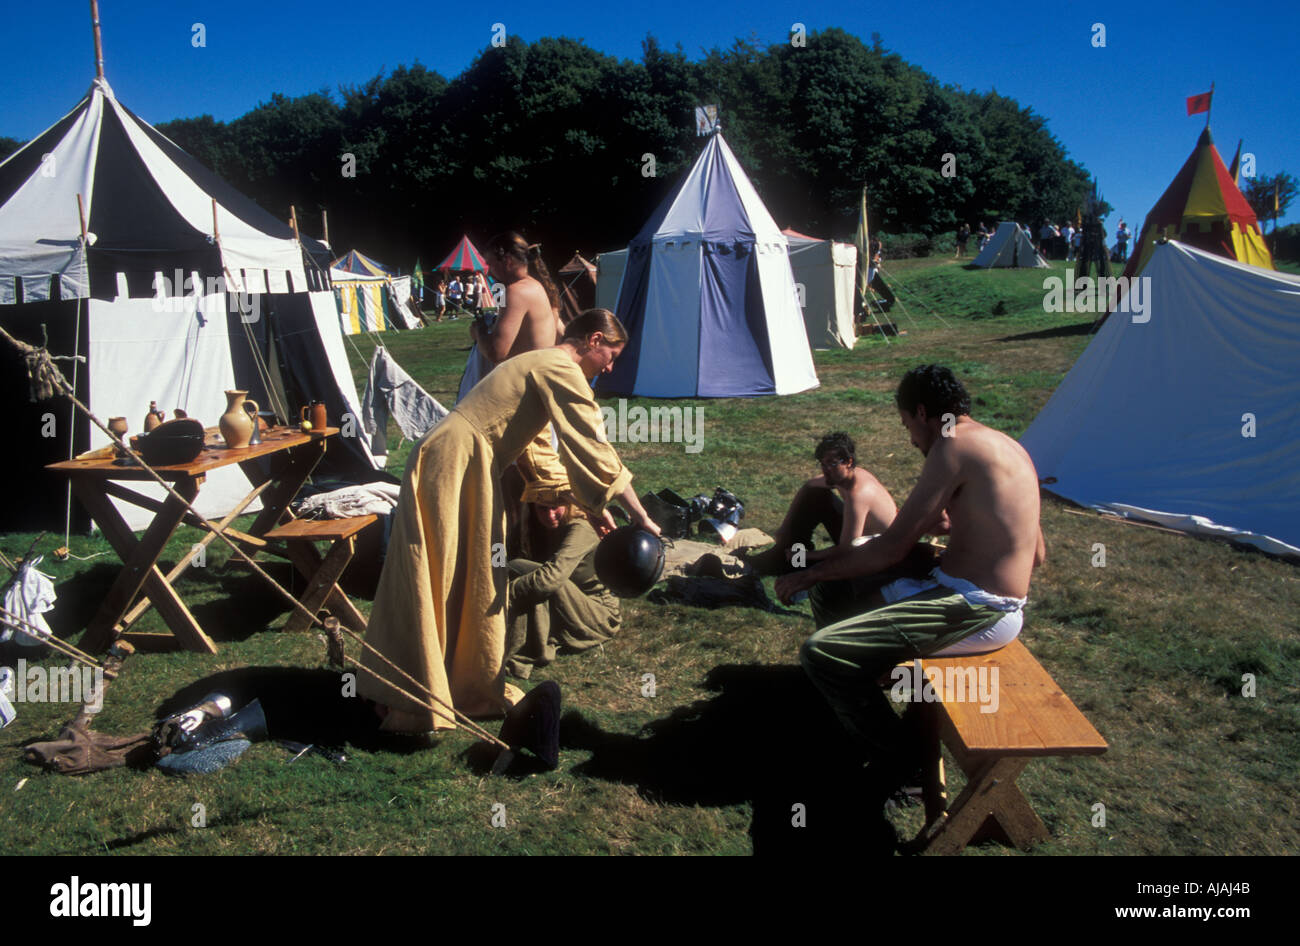 Medieval village at Herstmonceux castle with a traders row and period demonstrations - Stock Image